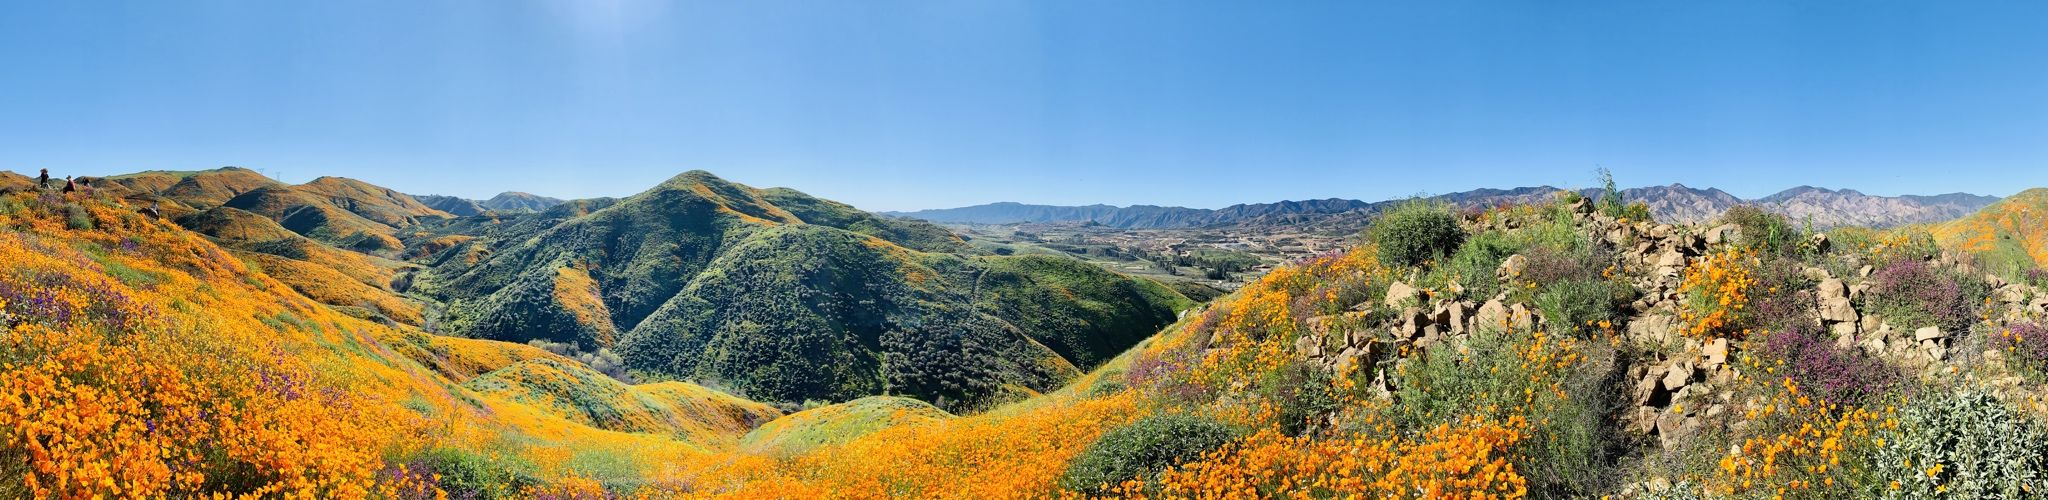 Spring Blooms in Walker Canyon, San Diego County. Photo